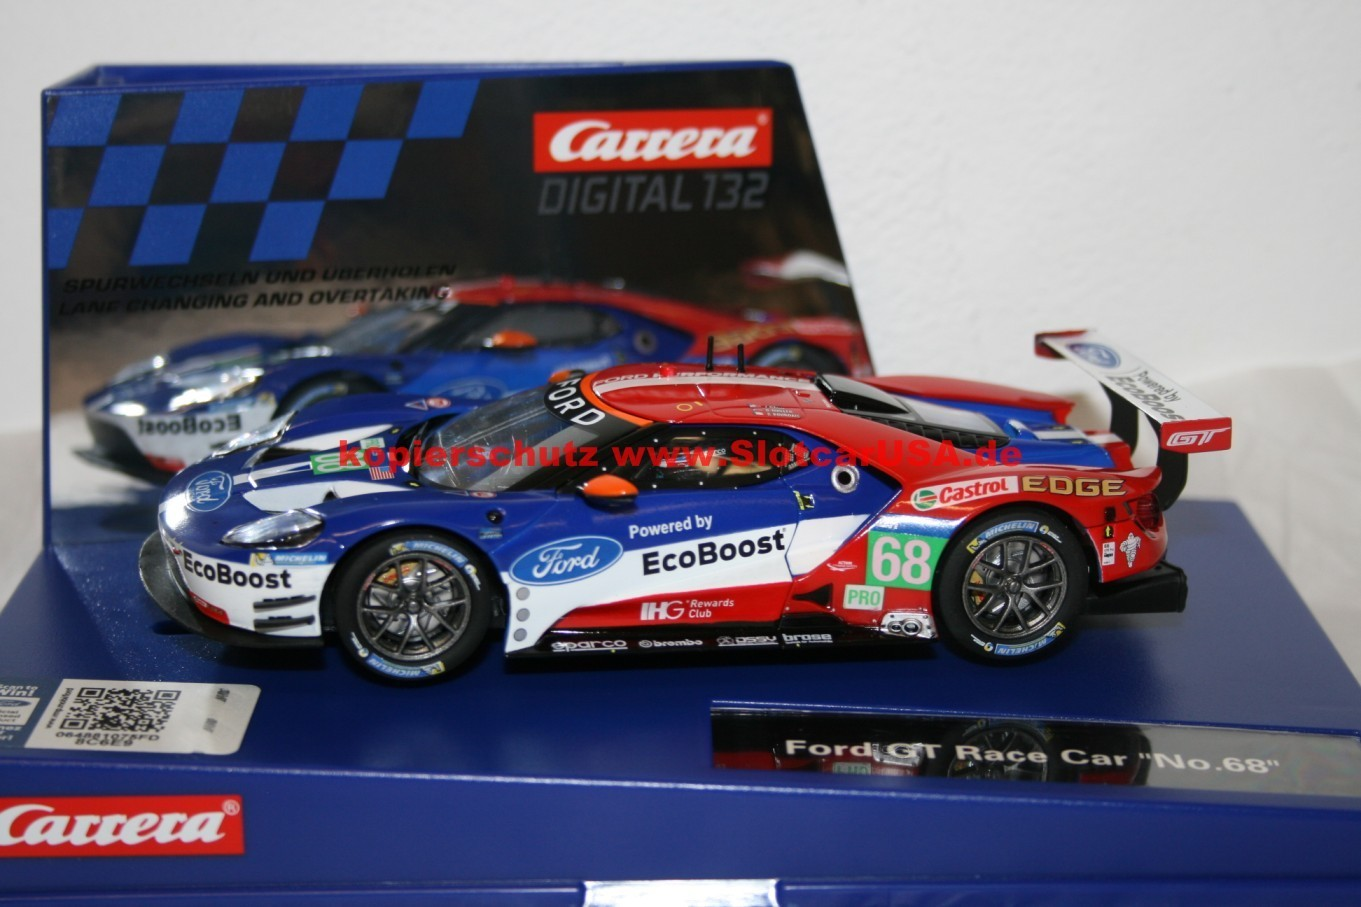 carrera digital 132 30771 ford gt race car ecoboost nr 68. Black Bedroom Furniture Sets. Home Design Ideas